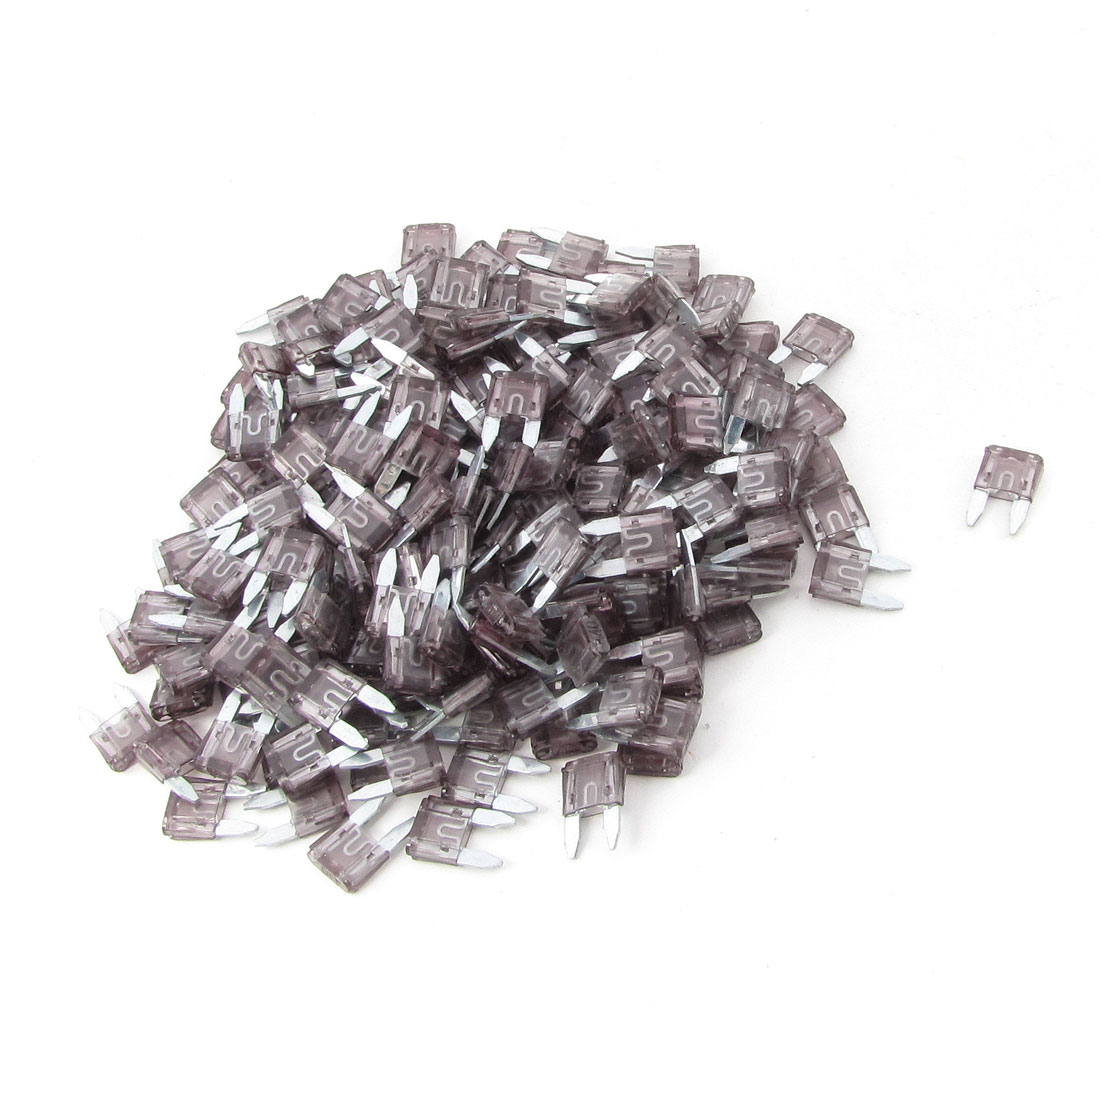 Automotive Car Small Size Blade Fuse 40A Pale Gray Auto Fuses 200 Pcs